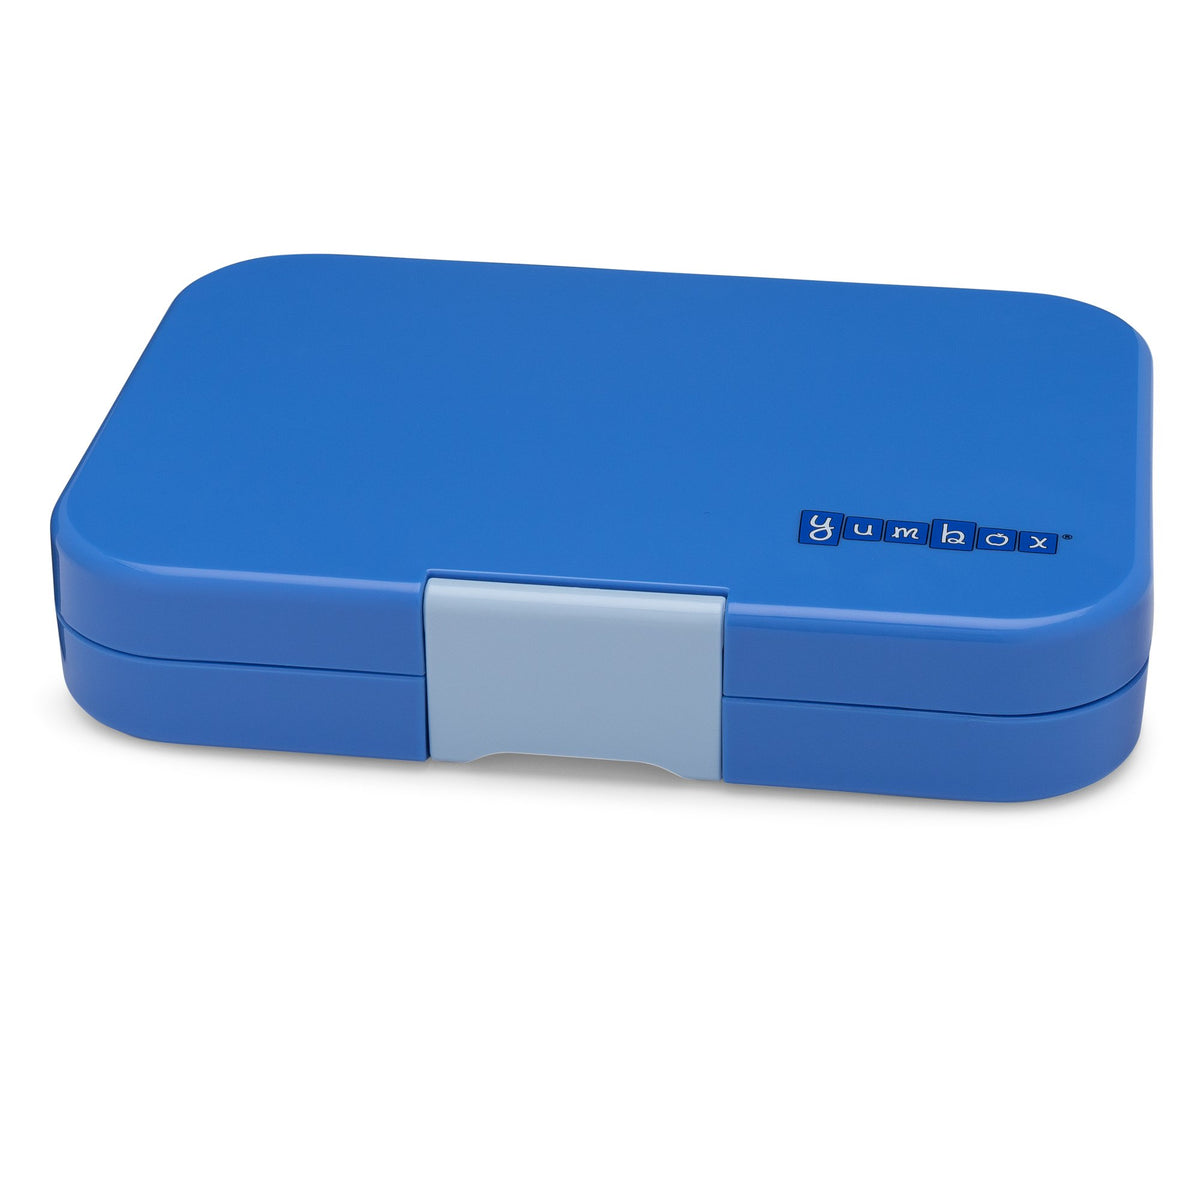 Yumbox Tapas 5 Compartment - True Blue - NEW